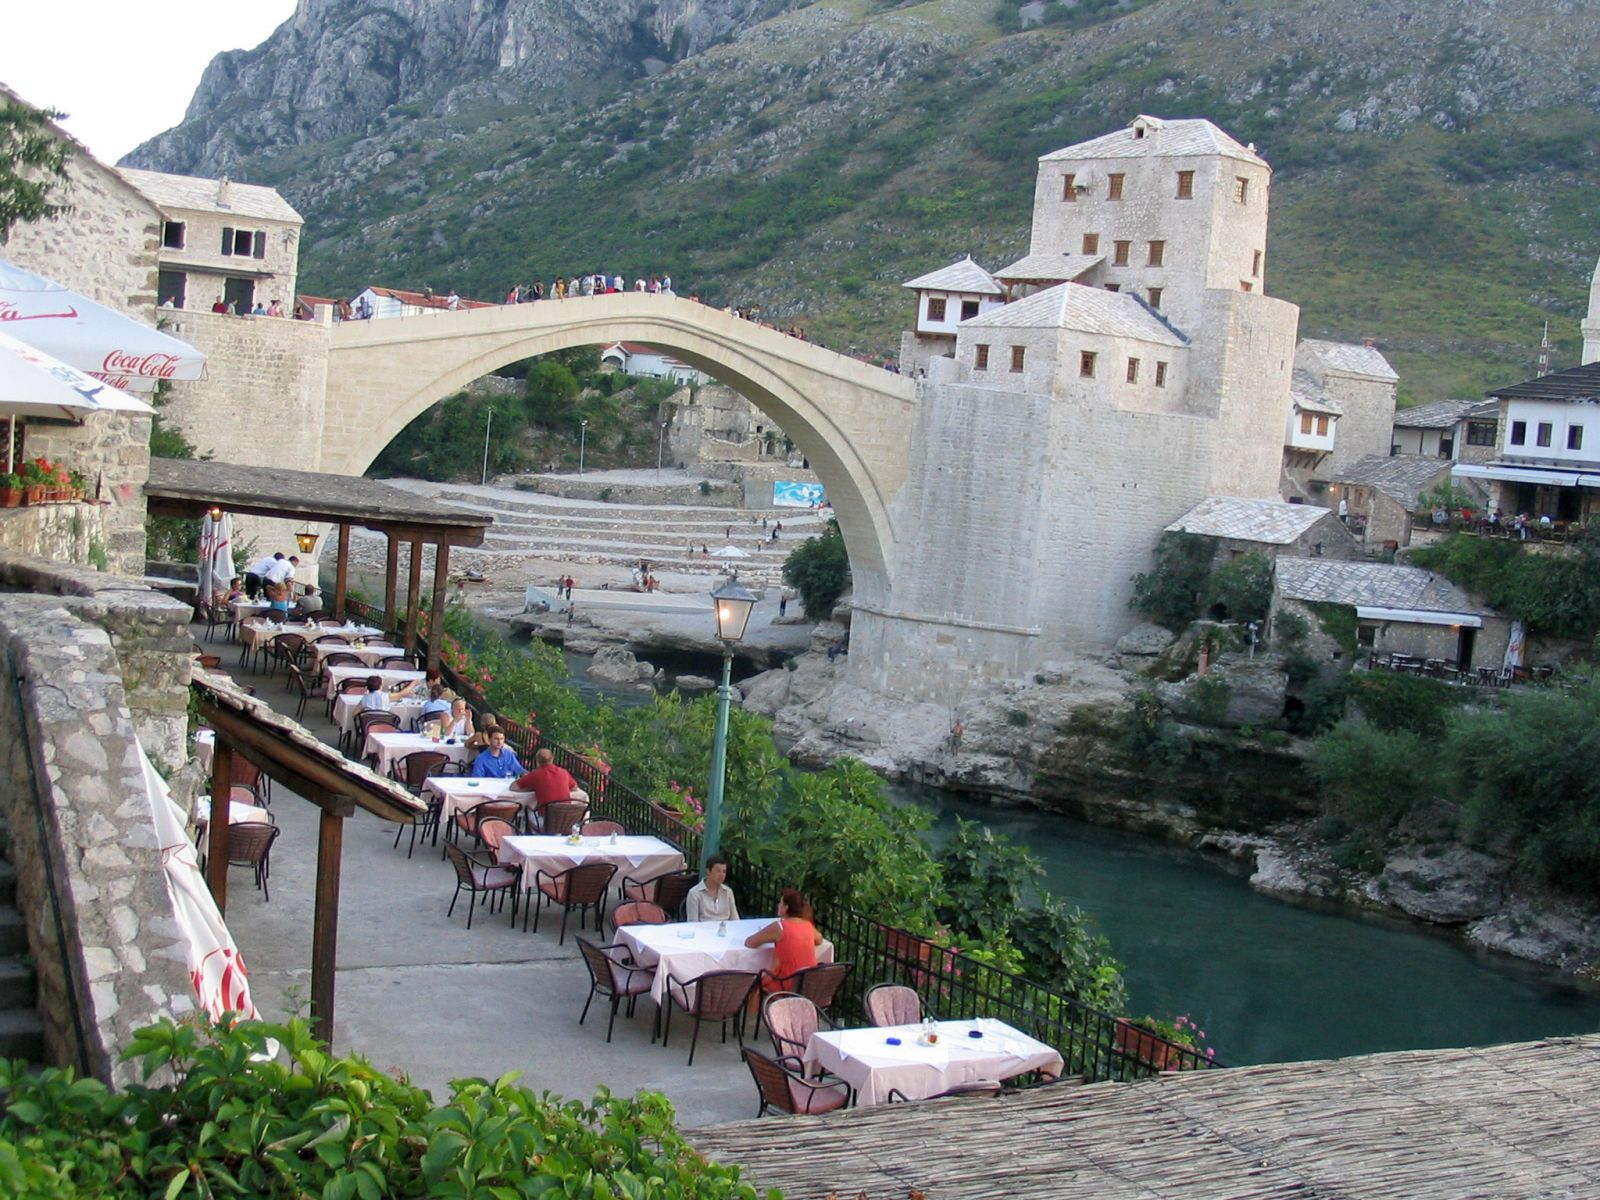 -images-excursions-mostar-tour--mostar-tour-07.jpg